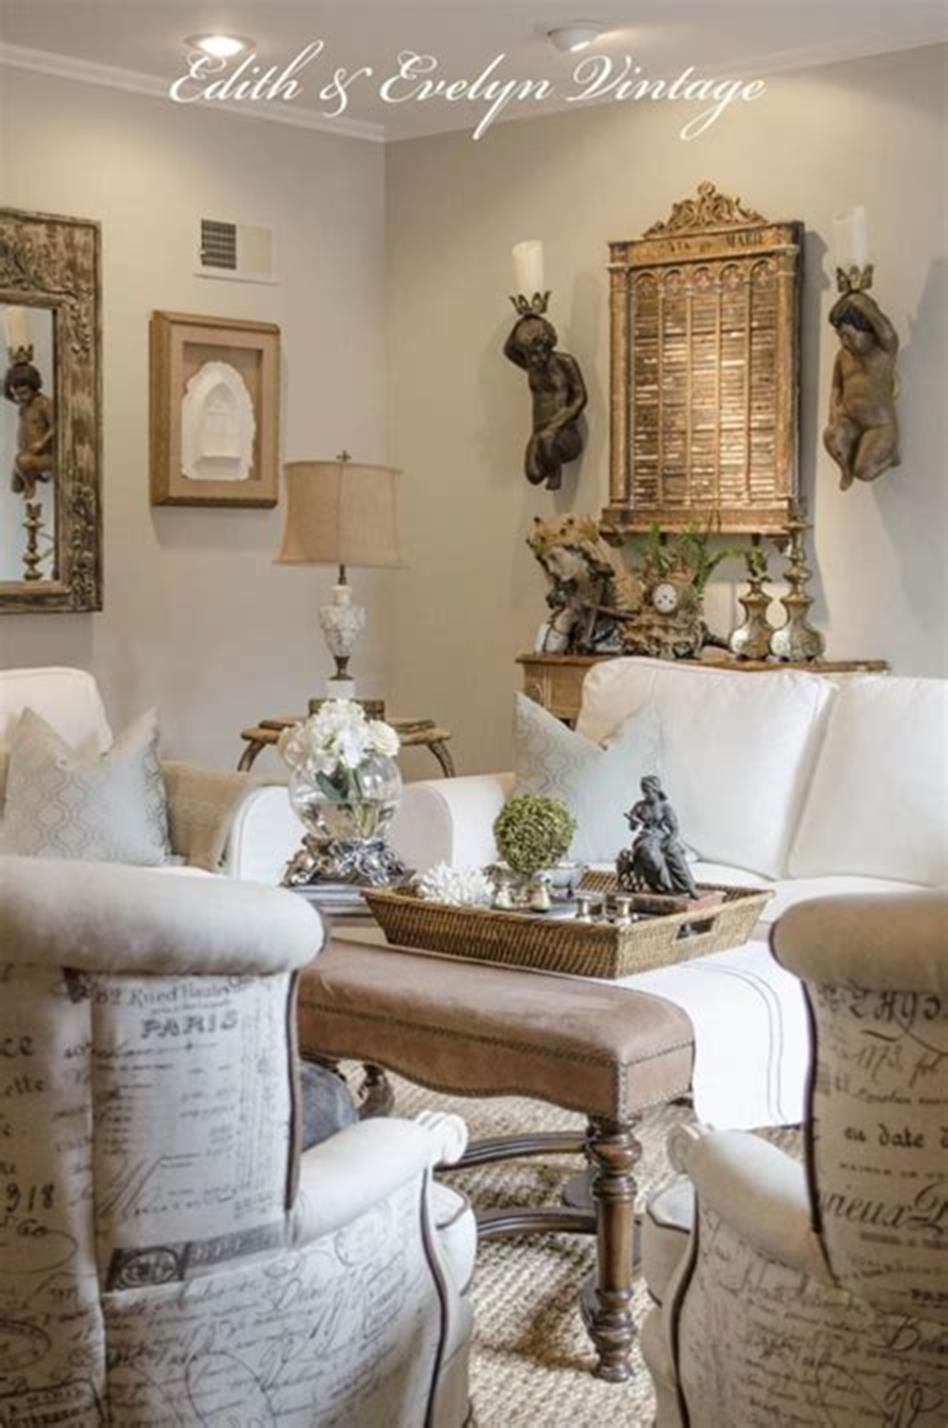 41 Stunning Country Home Decorating Ideas You Ll Love Ondiyideas French Country Decorating Country House Decor French Country Decorating Living Room